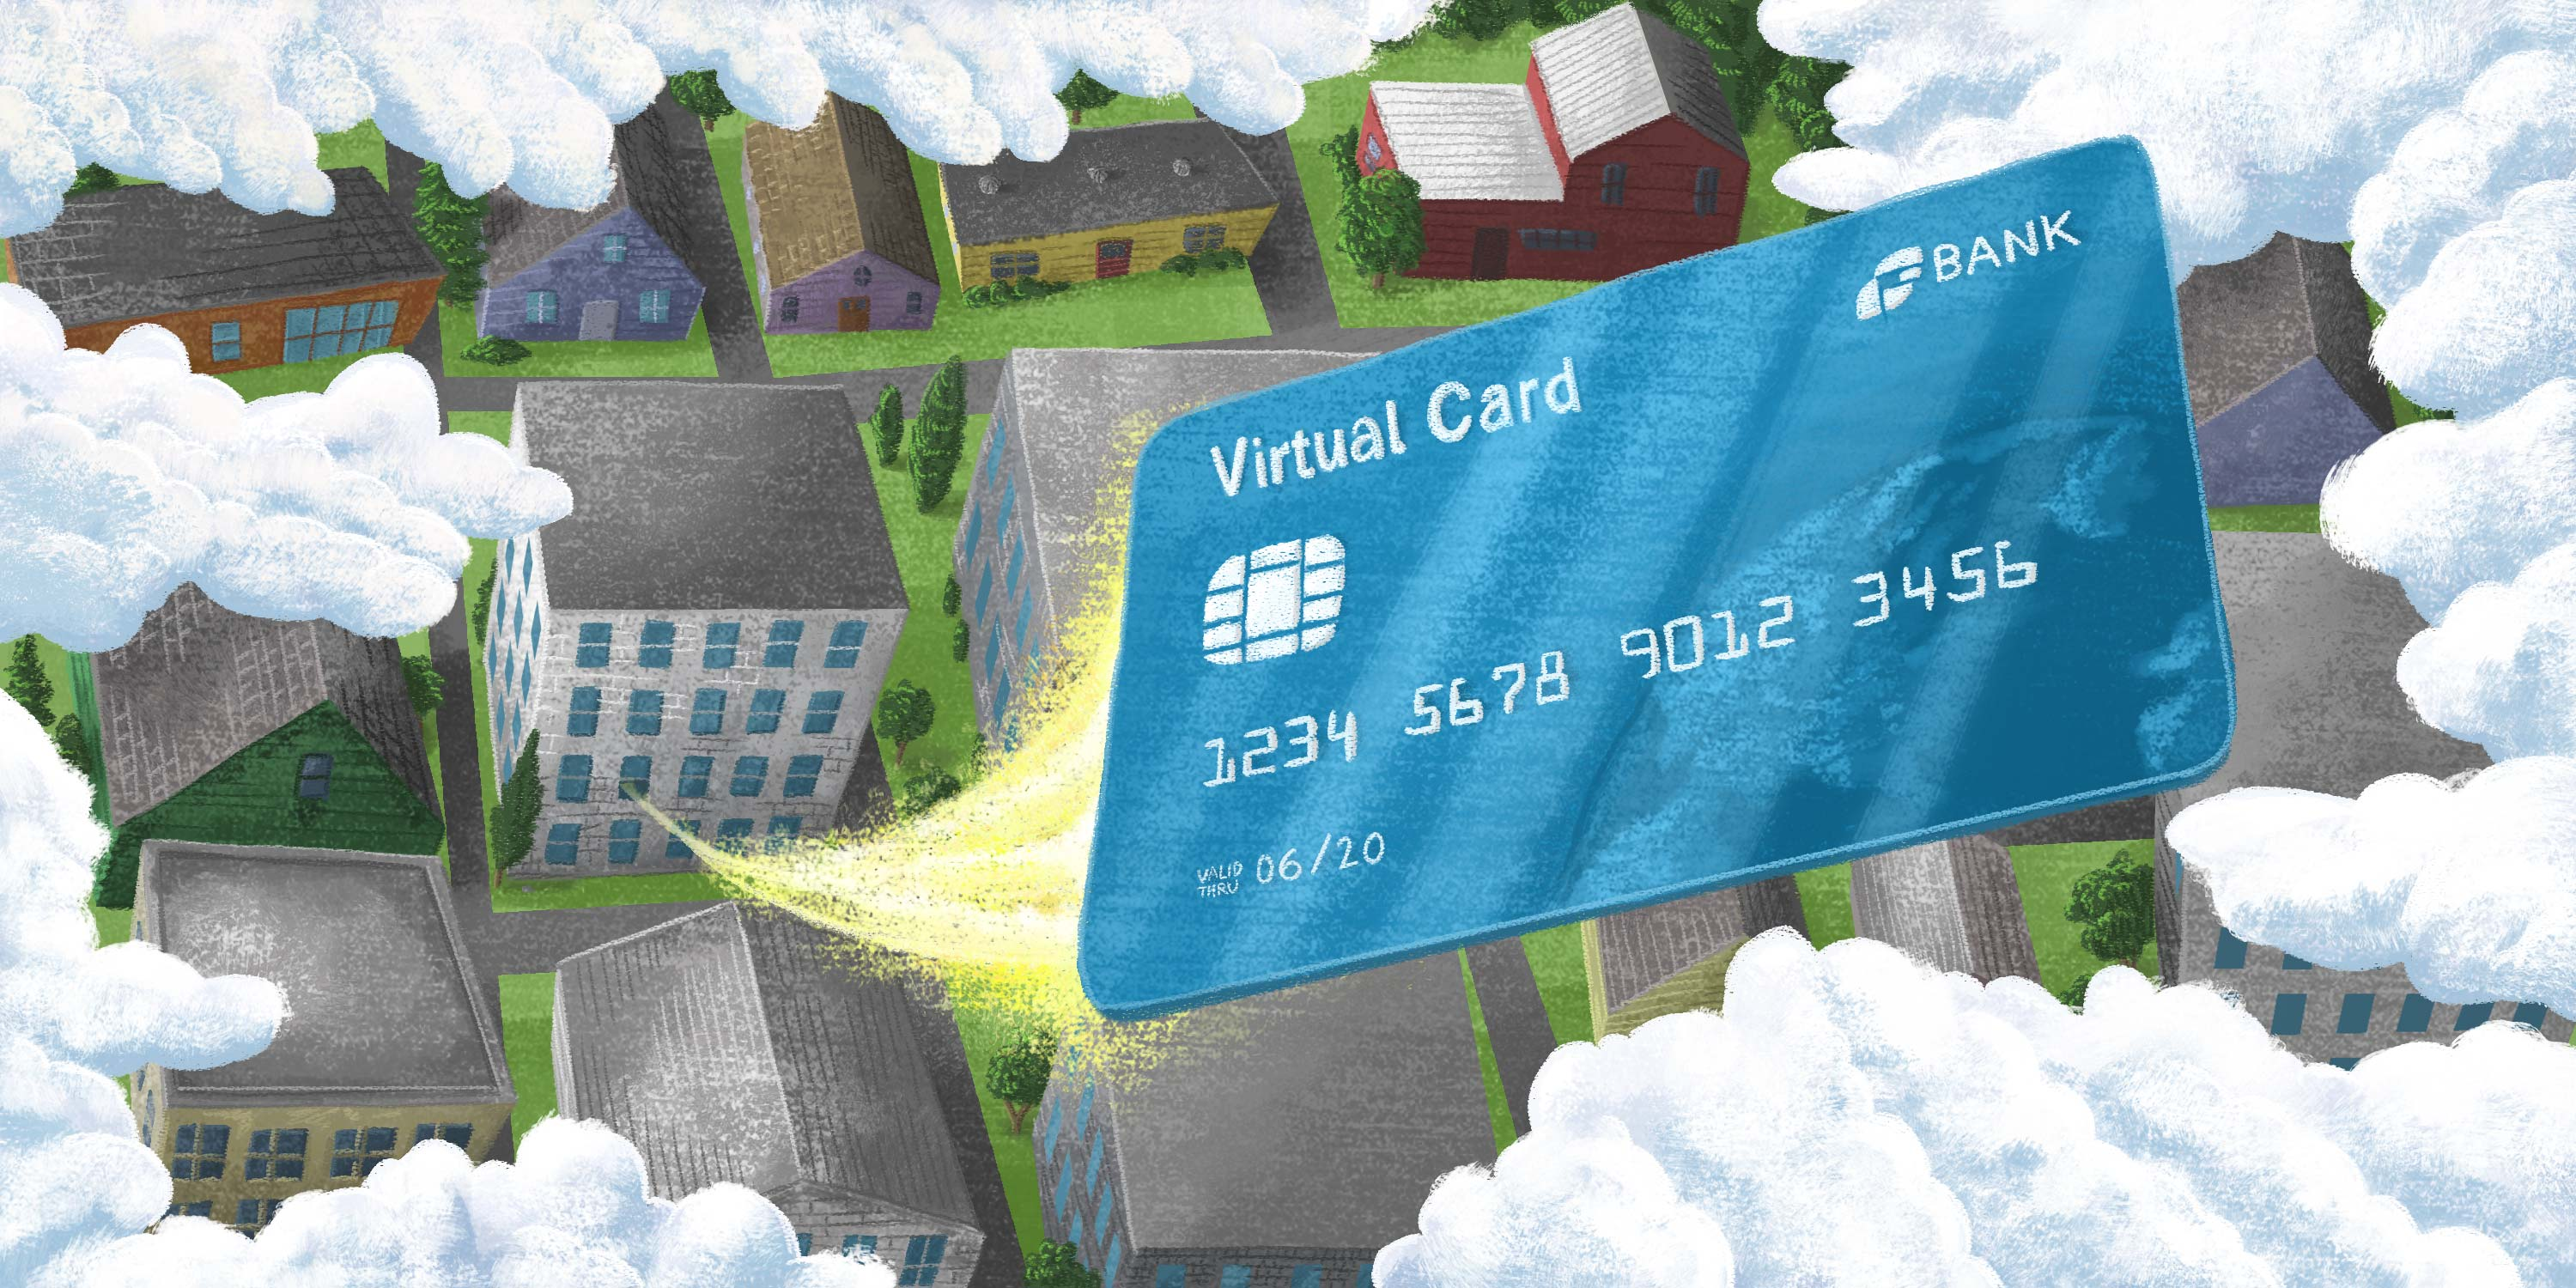 virtual card flying into the clouds from a business below